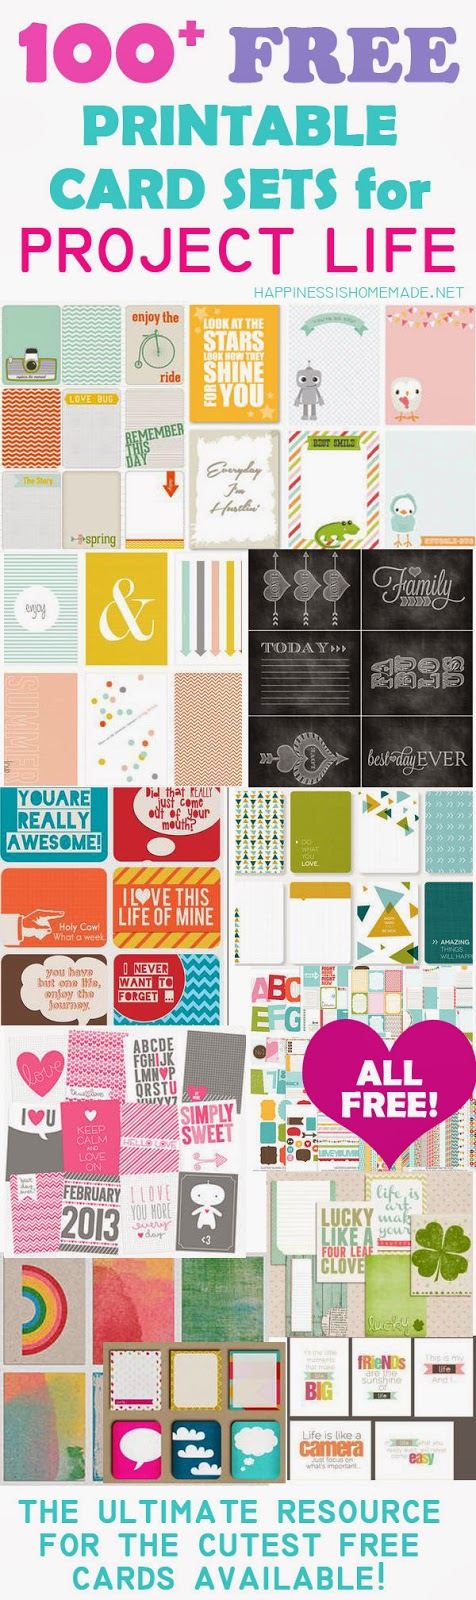 http://www.happinessishomemade.net/2013/07/26/100-free-printable-project-life-journaling-card-insert-sets/